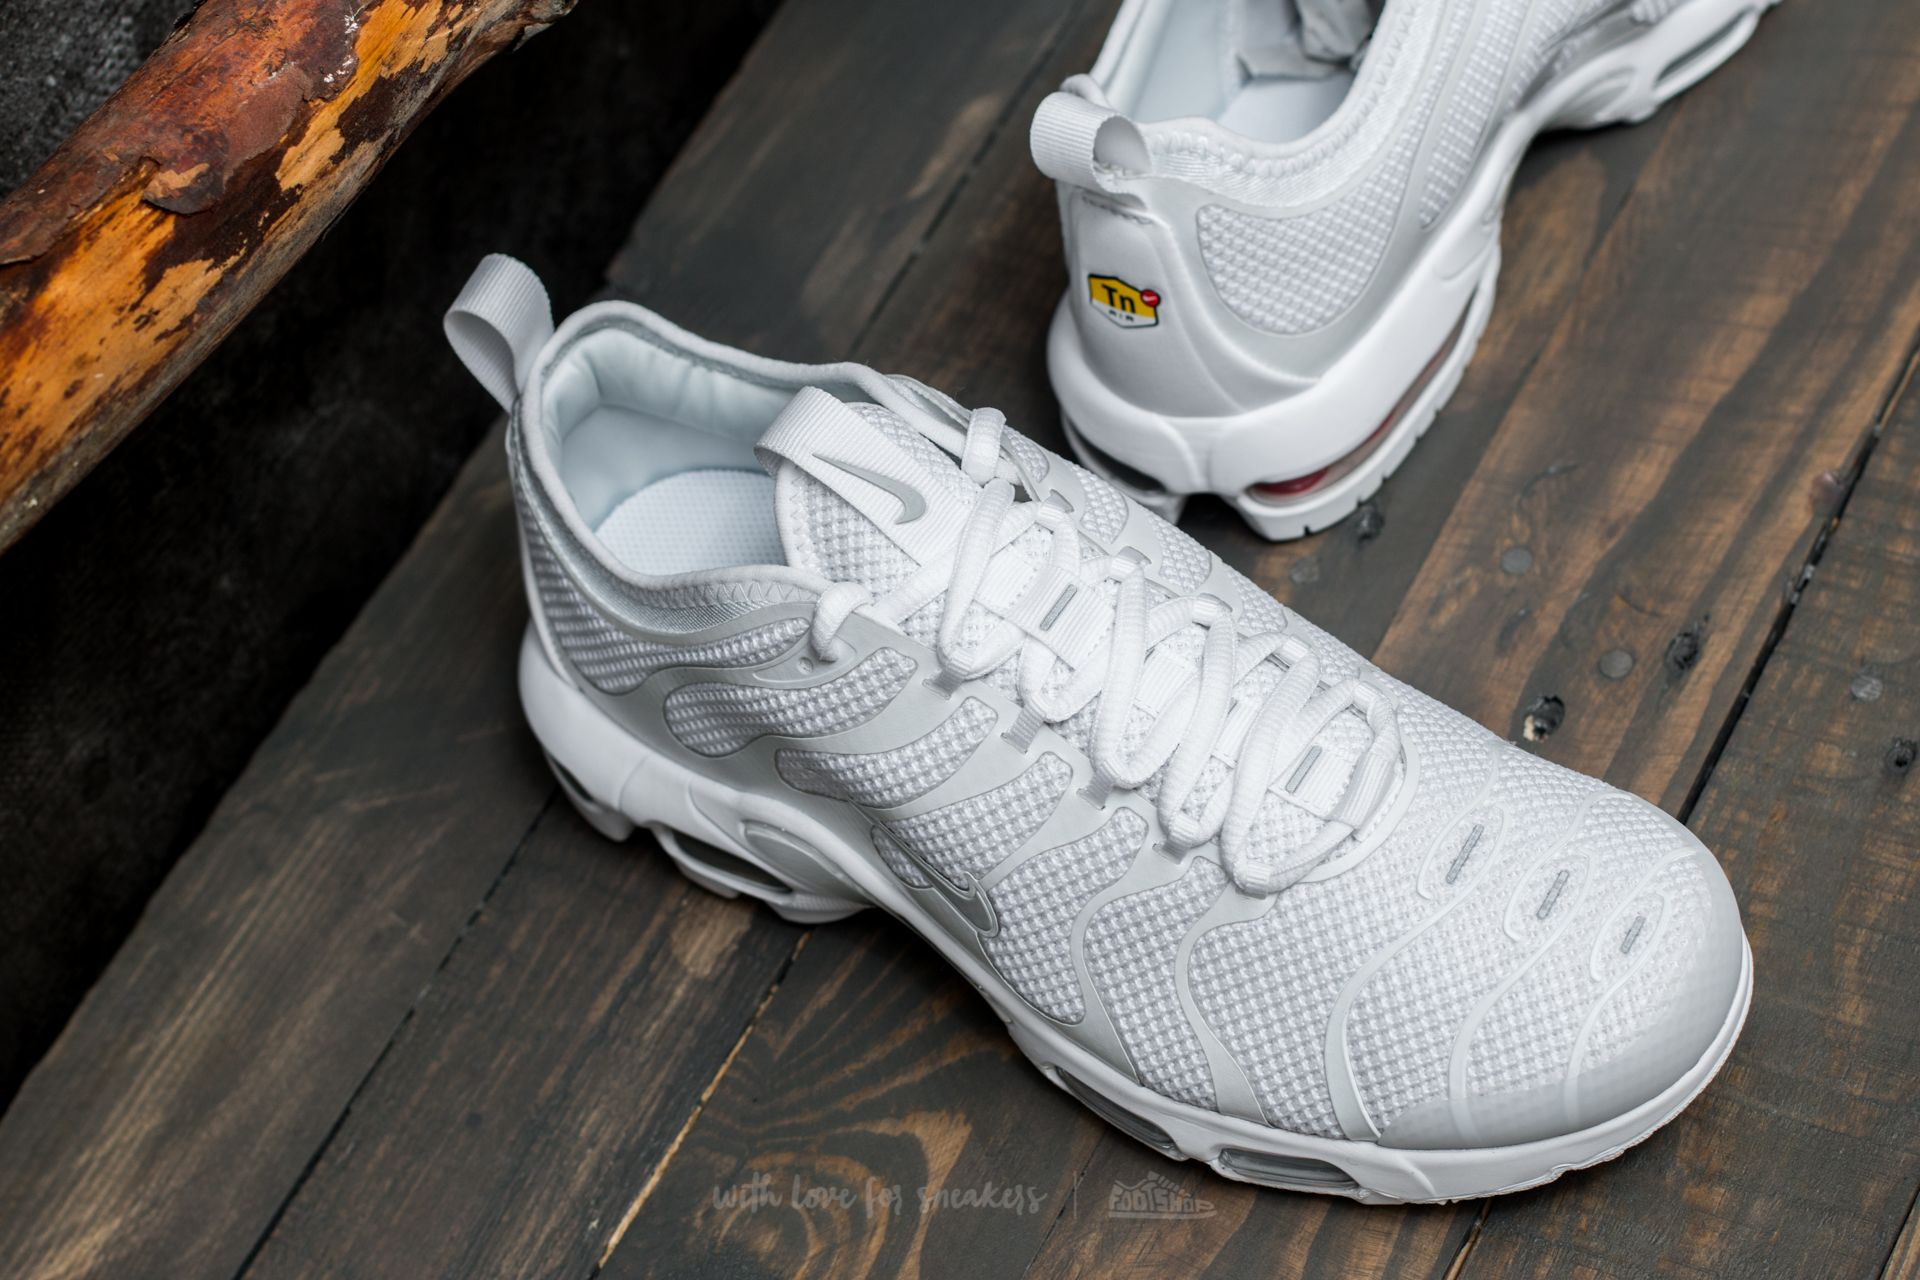 hot sale online 89c63 808b0 Nike Air Max Plus TN Ultra White/ Pure Platinum-White | Footshop